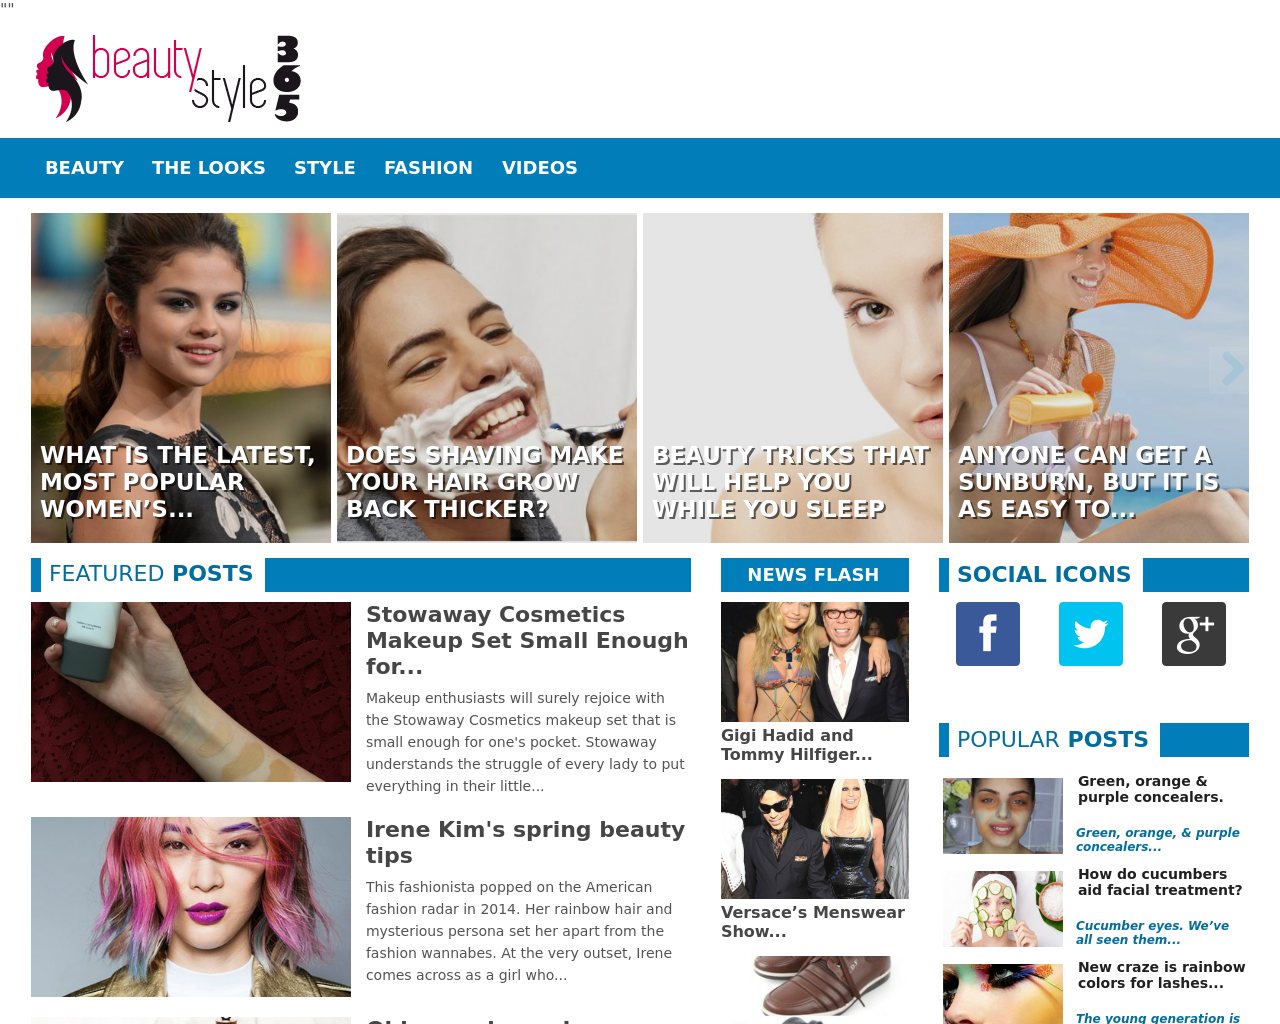 Beauty-&-Style-365-Advertising-Reviews-Pricing